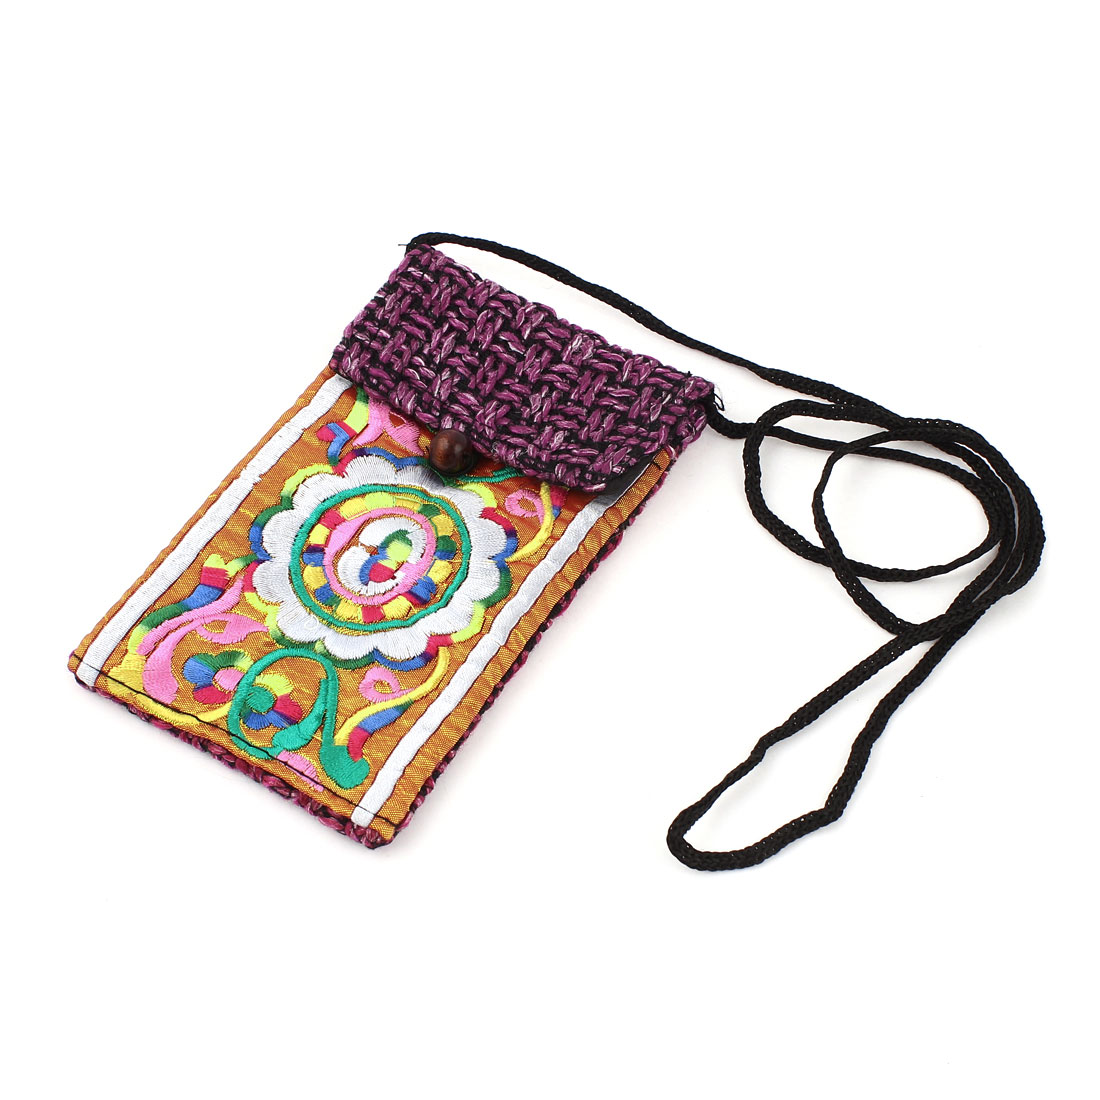 Amaranth Orange Embroidery Floral Pattern Hand Strap Knitting Smartphone Pouch Bag